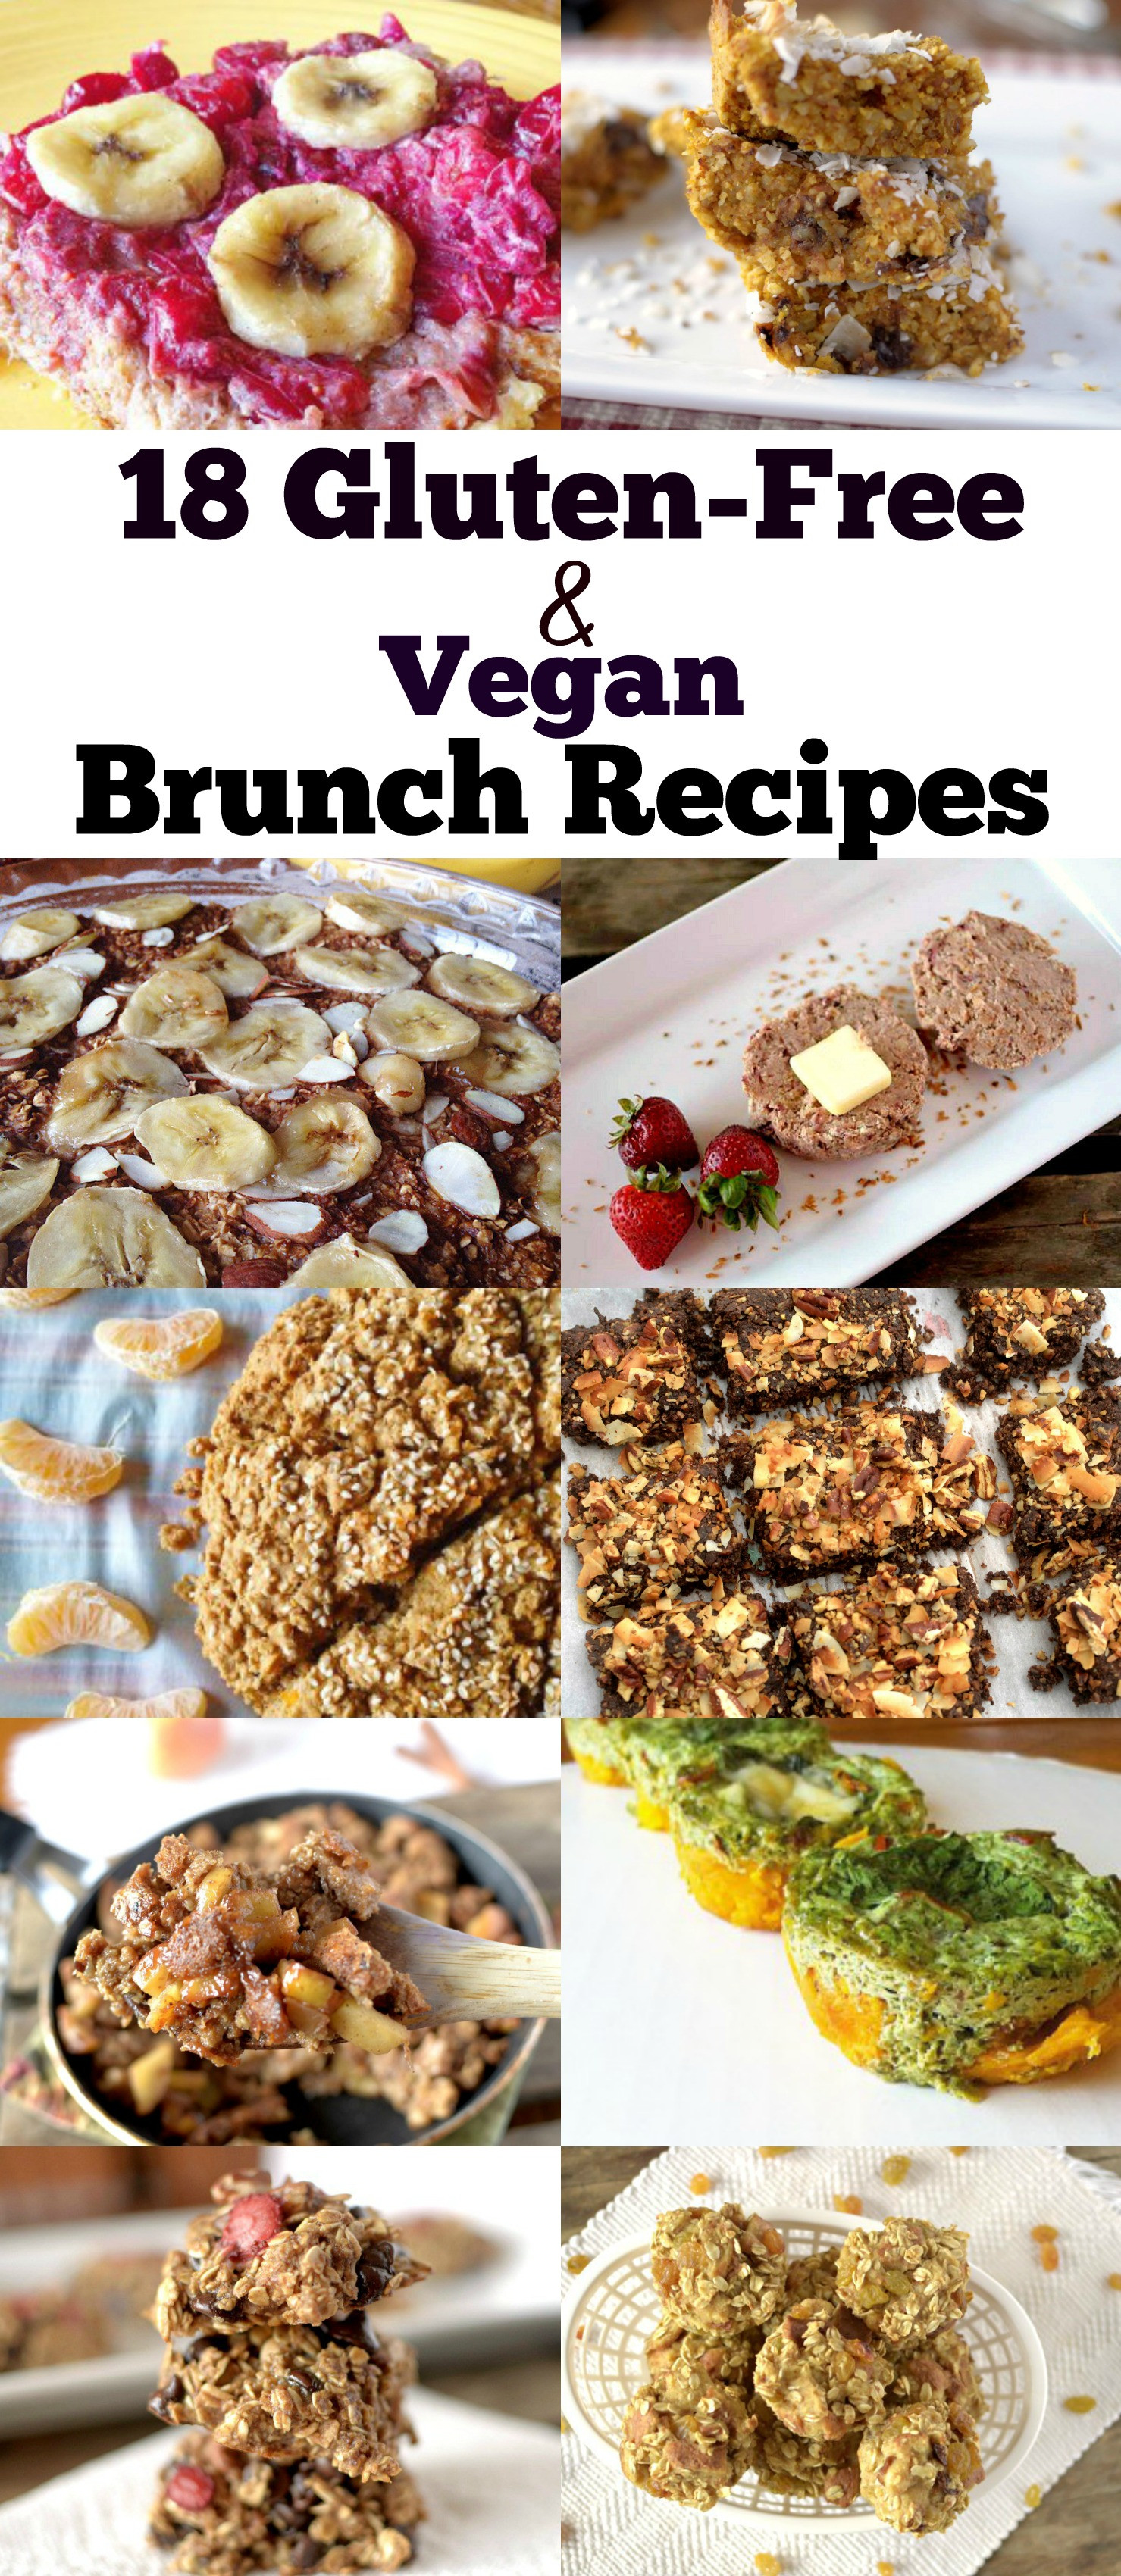 Dairy Free Brunch Recipes  18 Gluten Free and Vegan Brunch Recipes Clean and